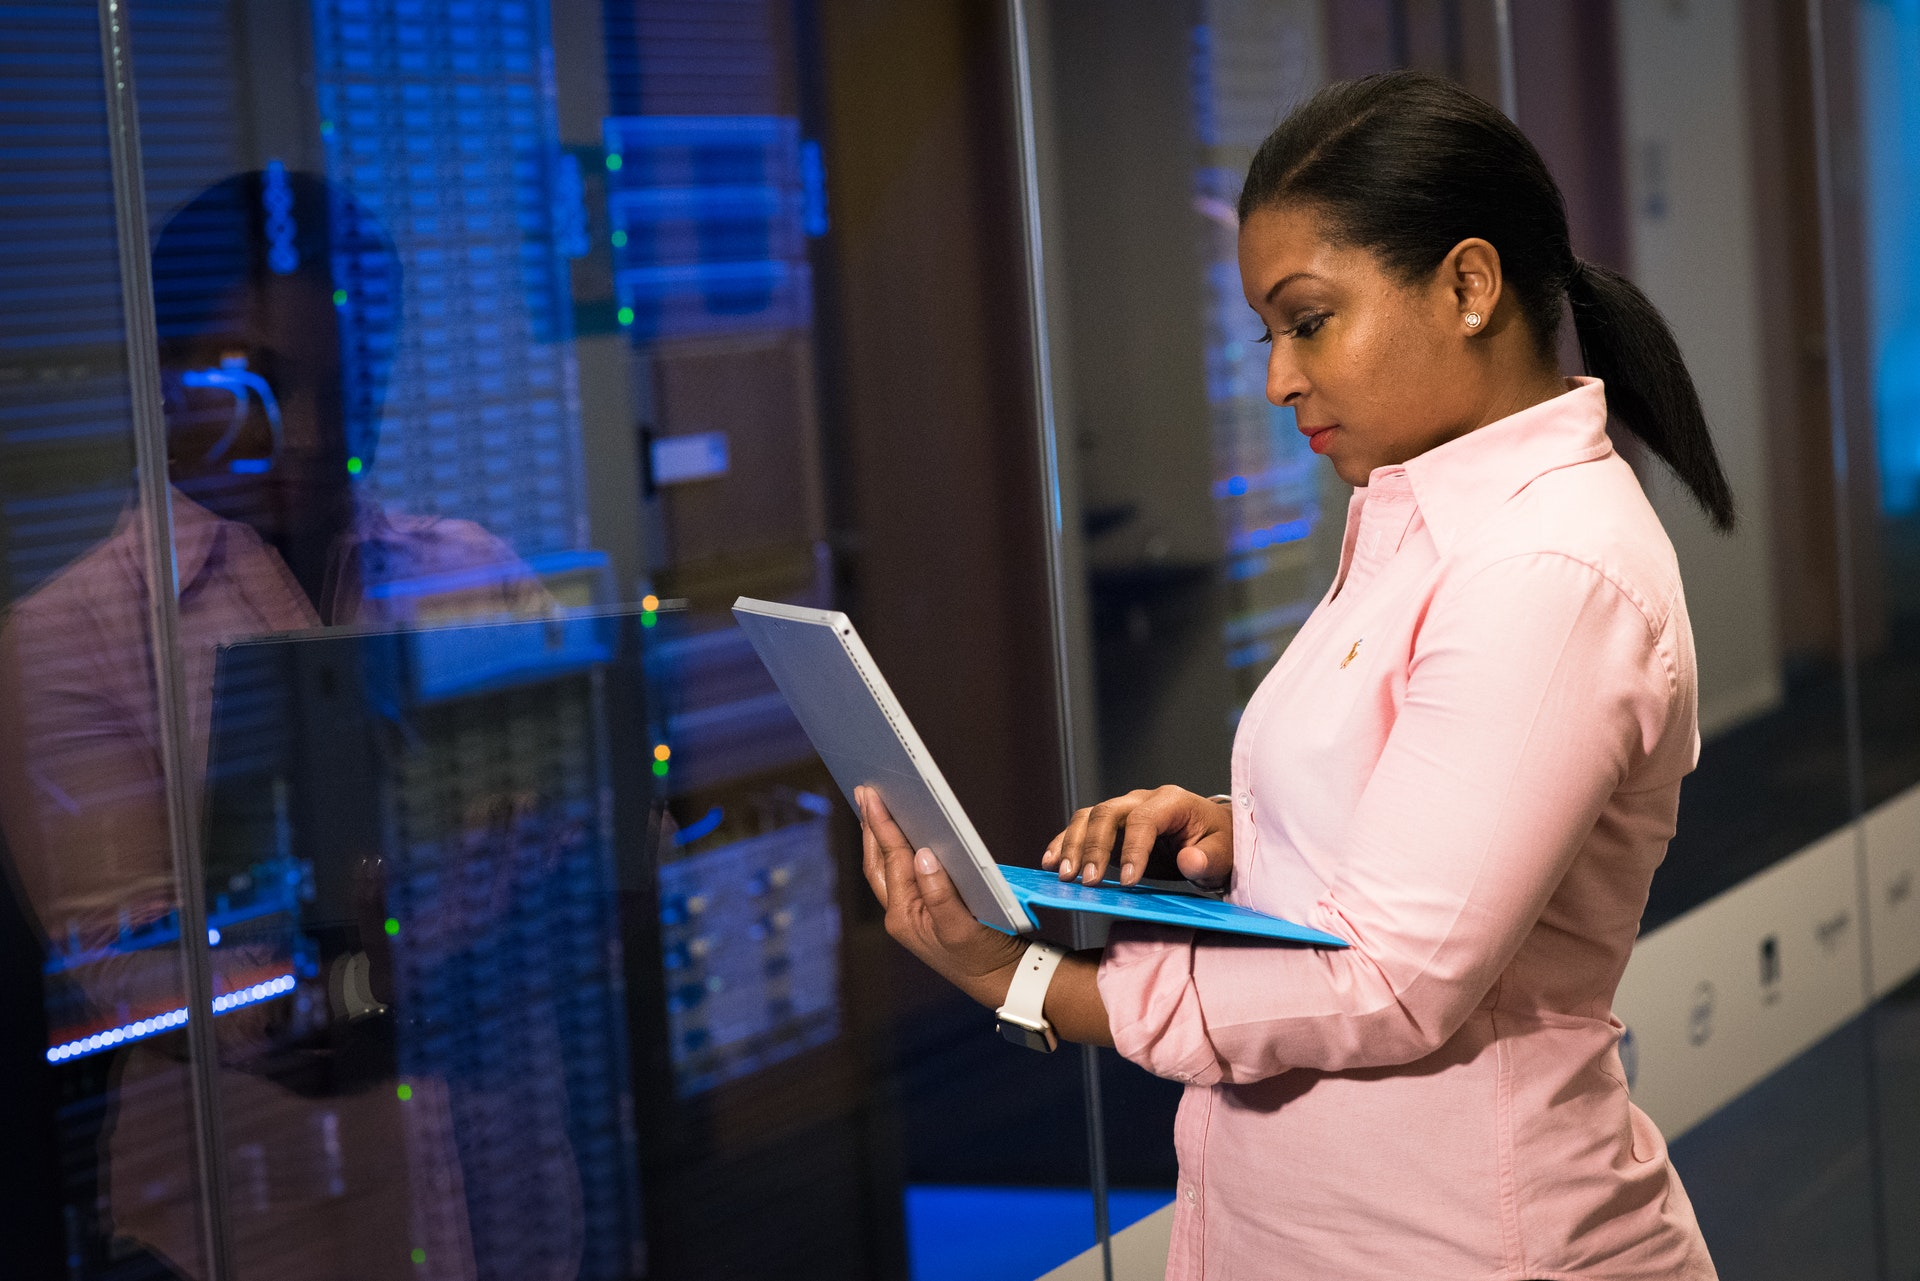 Woman standing with laptop in front of server